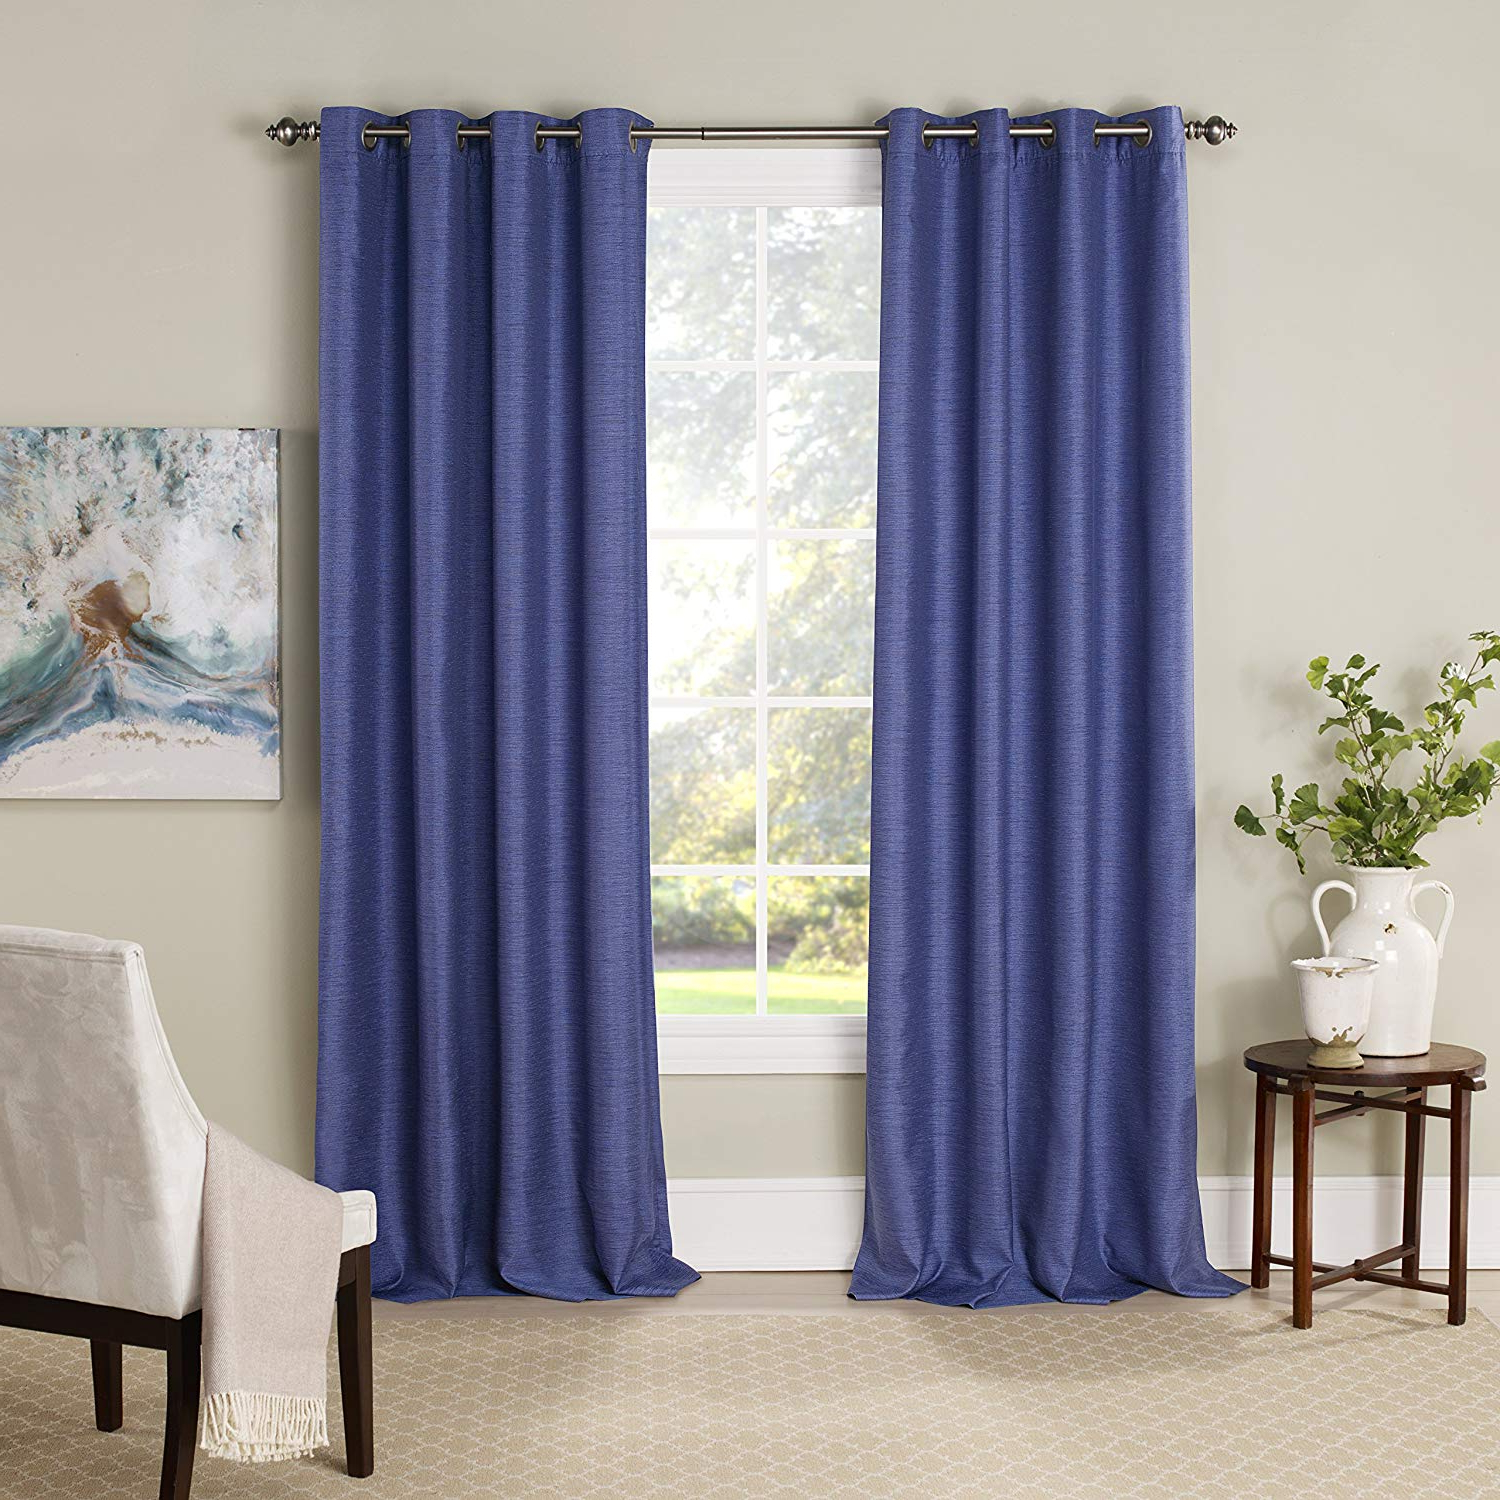 "Eclipse Blackout Curtains For Bedroom – Newportinsulated Darkening Single Panel Grommet Top Window Treatment Living Room, 52"" X 84"", Nightfall With Regard To Preferred Eclipse Newport Blackout Curtain Panels (View 2 of 20)"